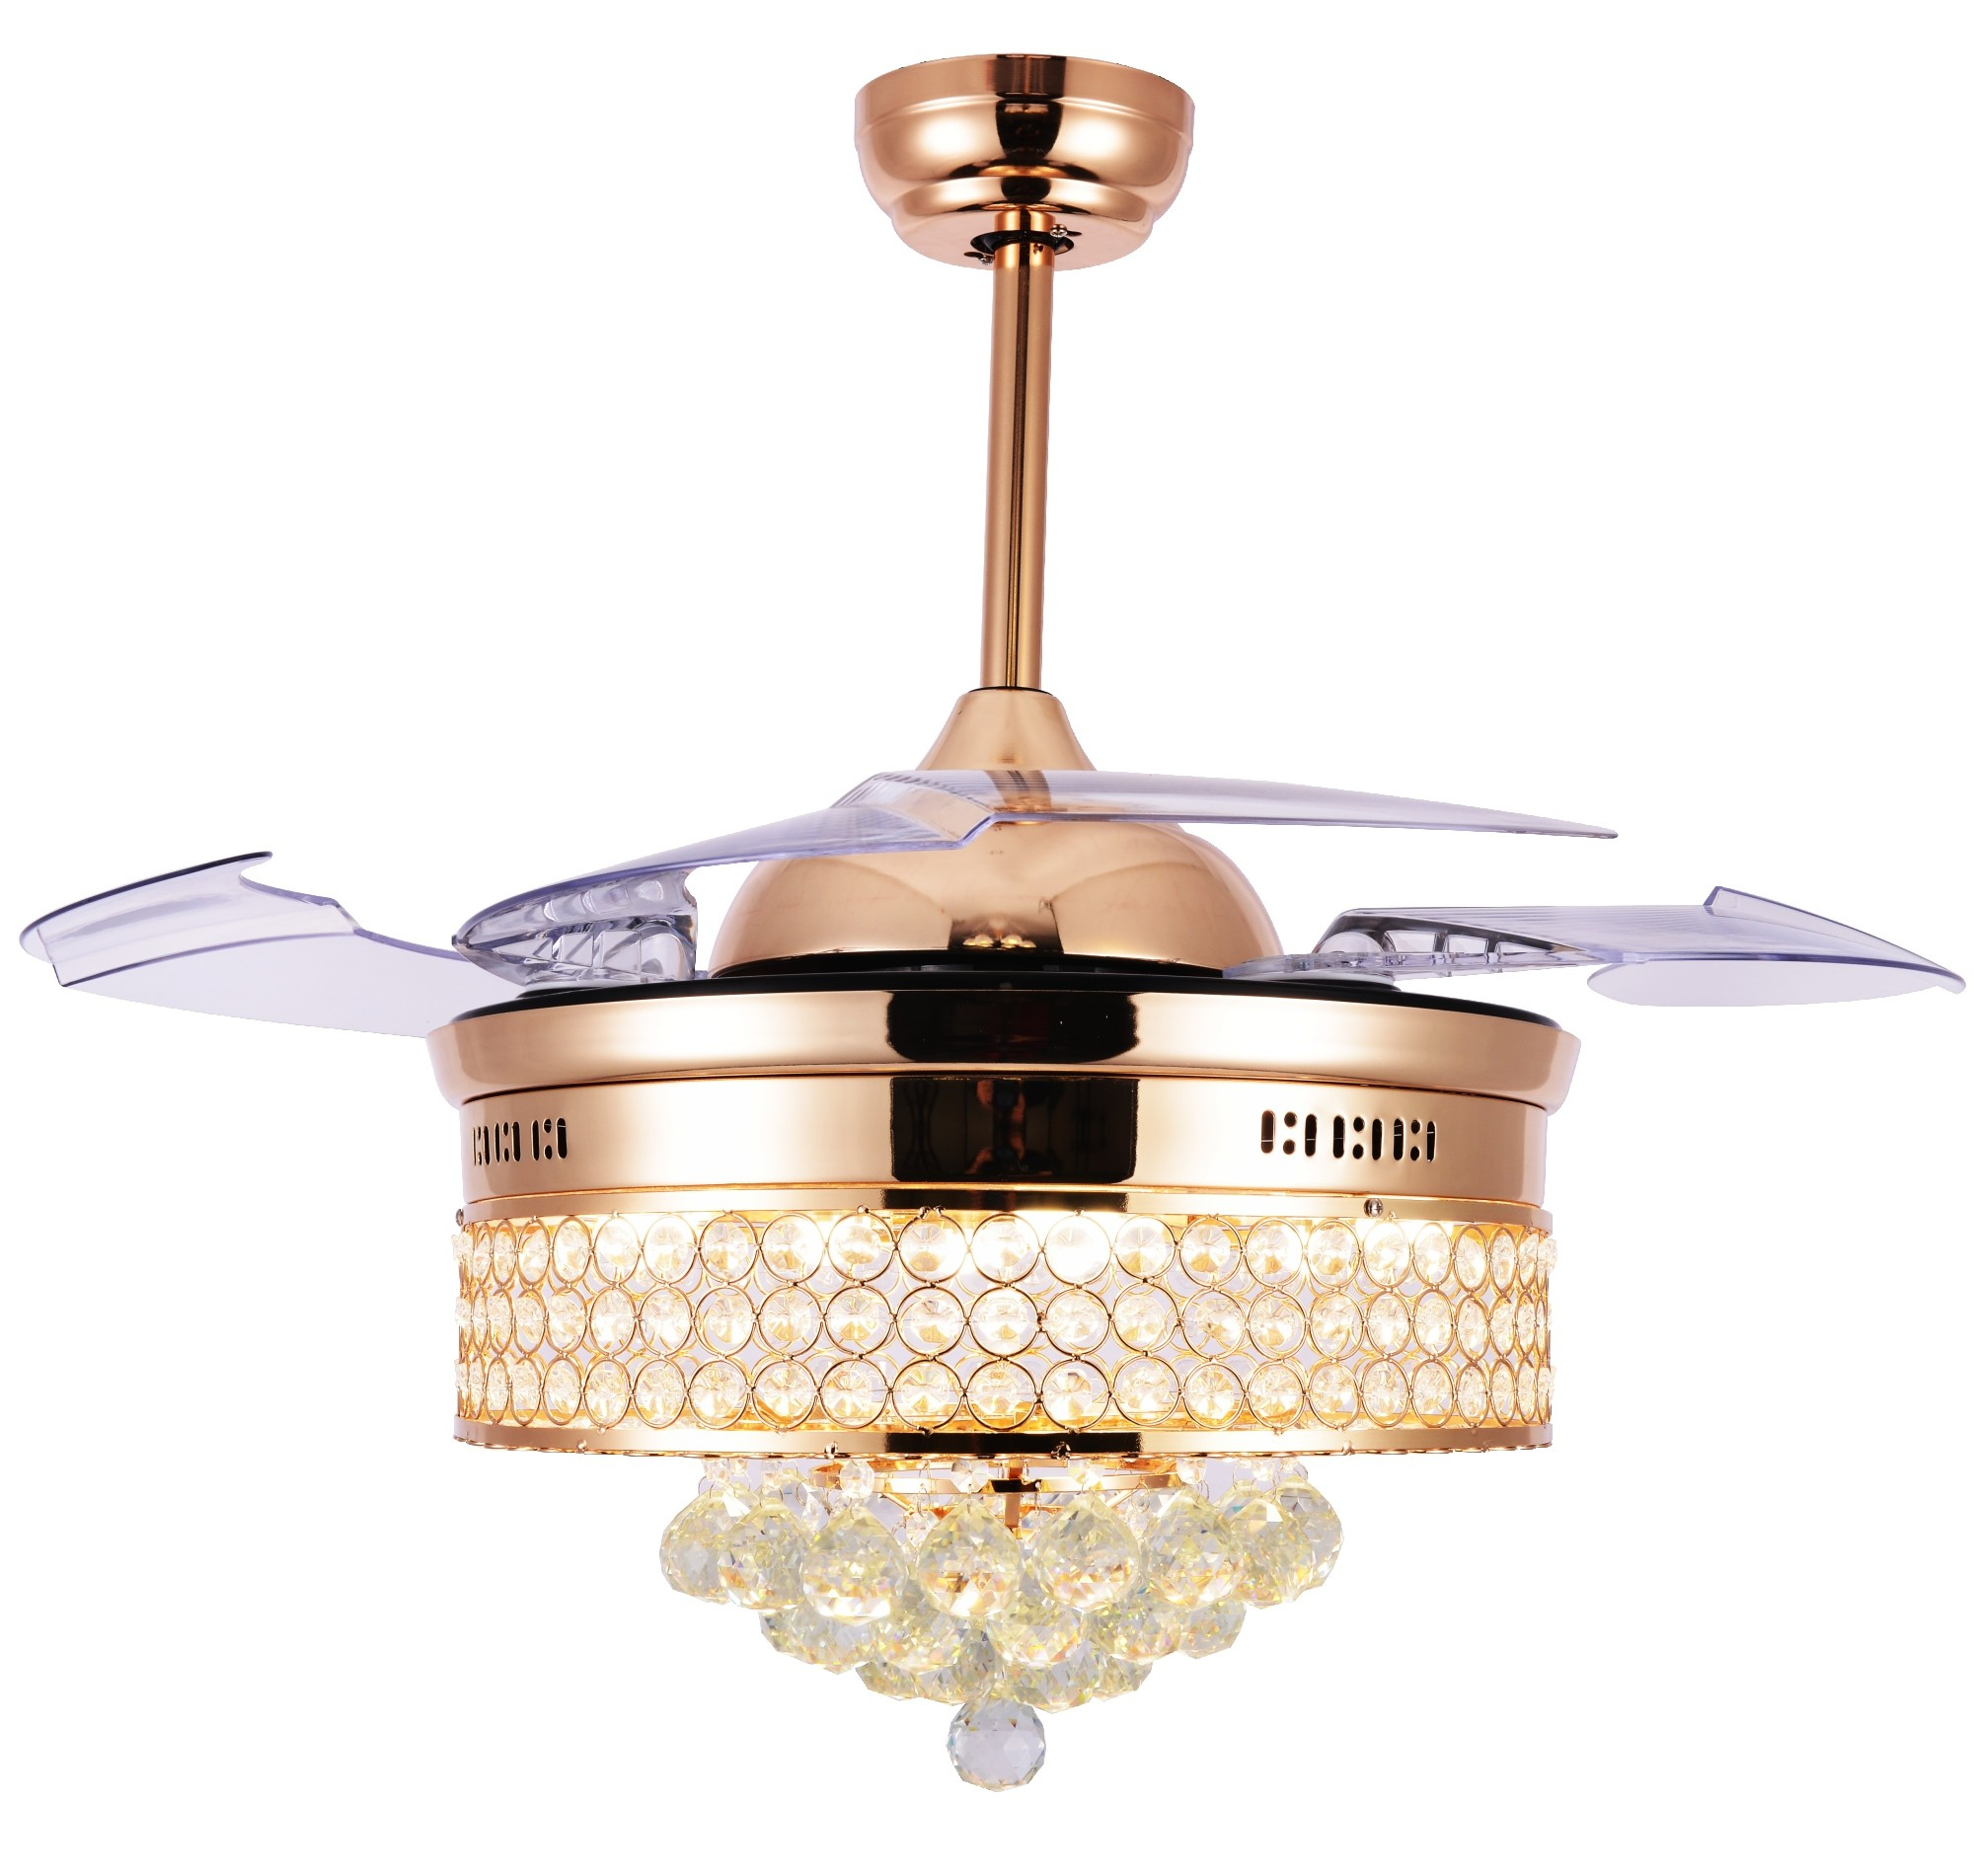 "42"" Crystal Chandelier Ceiling Fan With Remote And Lights With Regard To Most Up To Date Caged Crystal 5 Blade Ceiling Fans (View 1 of 20)"